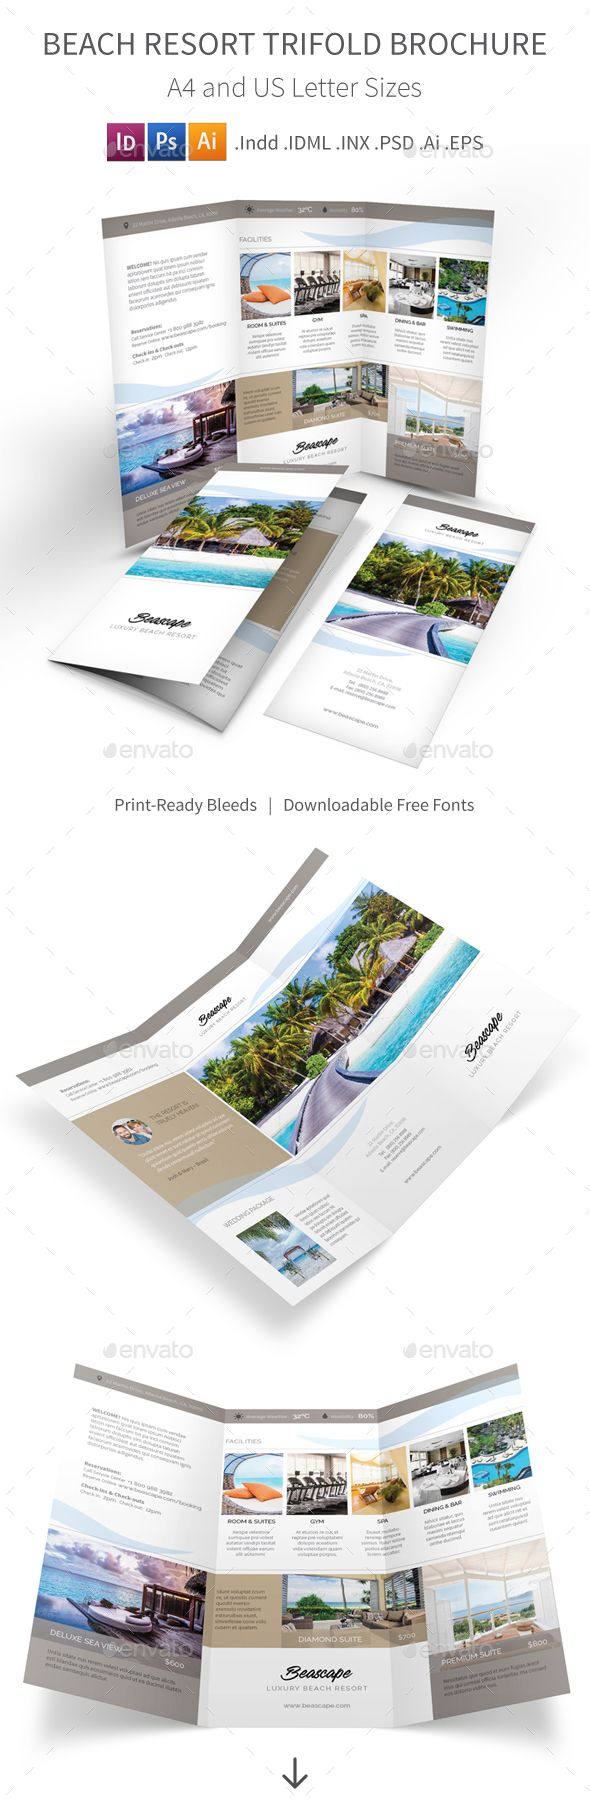 Beach Resort Trifold Brochure Template. Download here: http://graphicriver.net/item/beach-resort-trifold-brochure-2/15729081?ref=ksioks